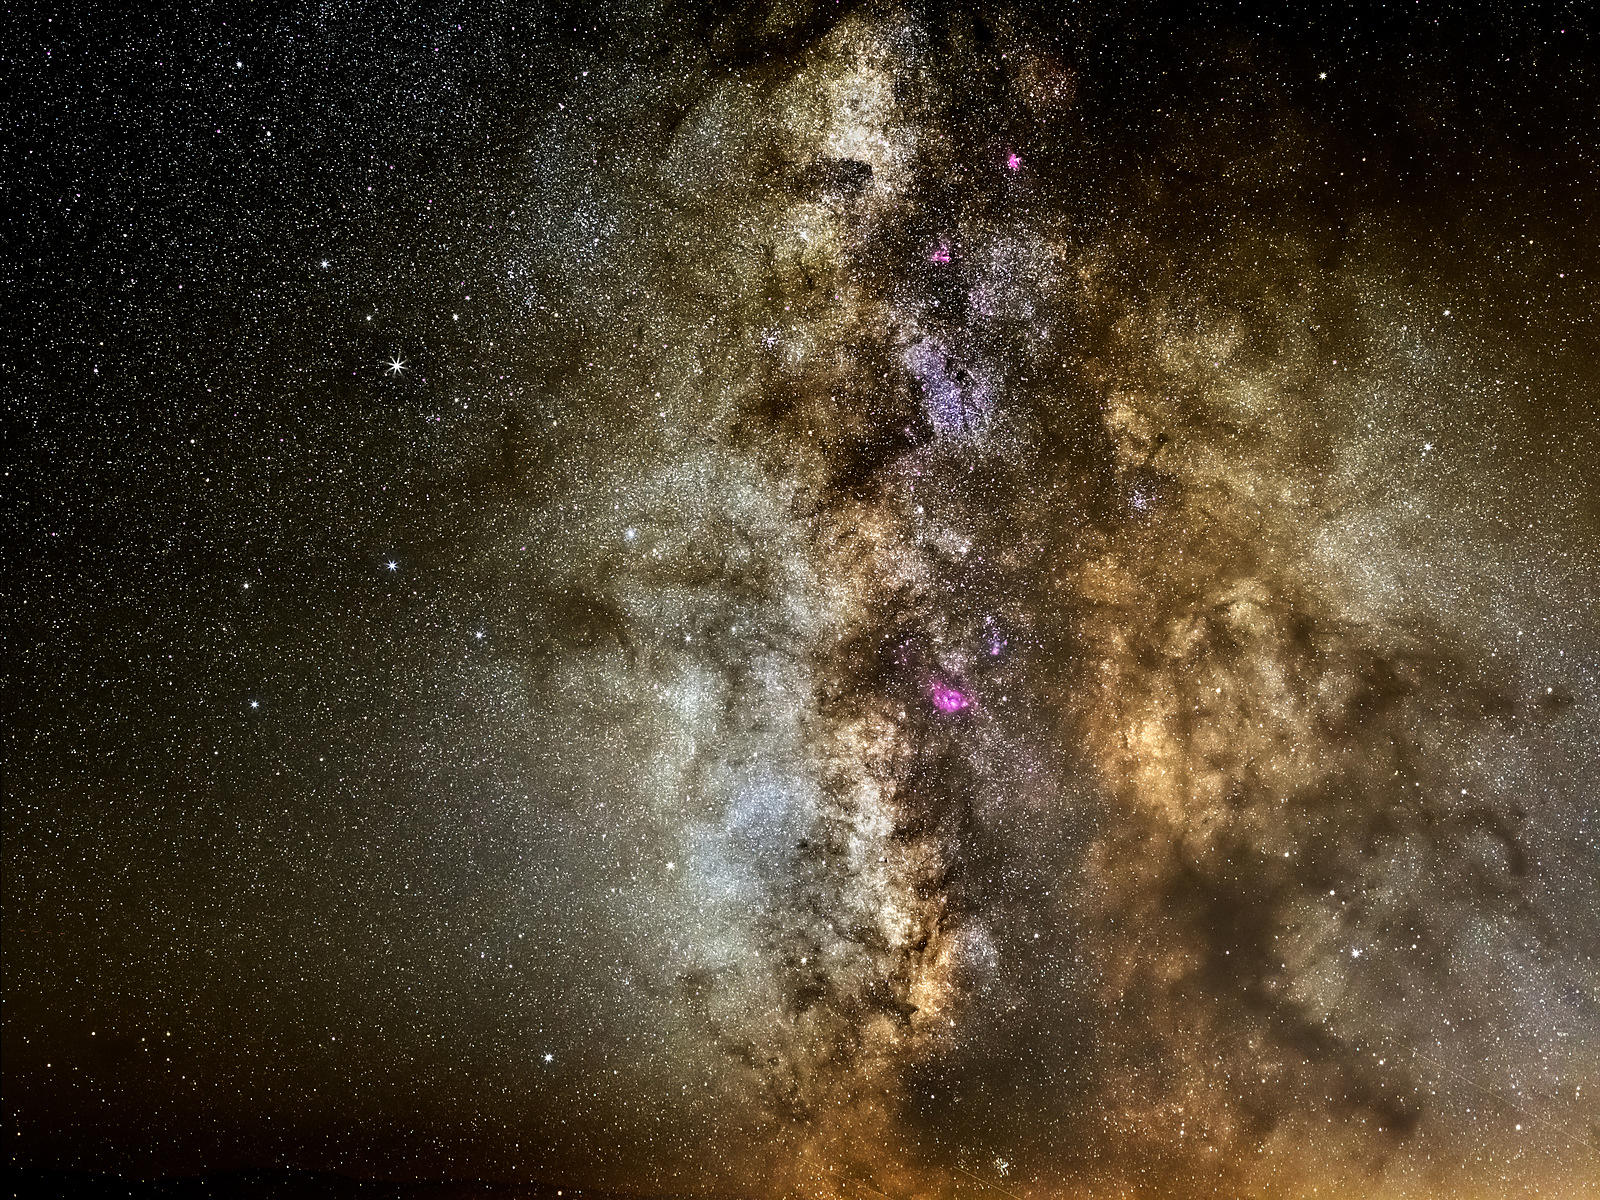 Constellation of Sagittarius and the Milky Way